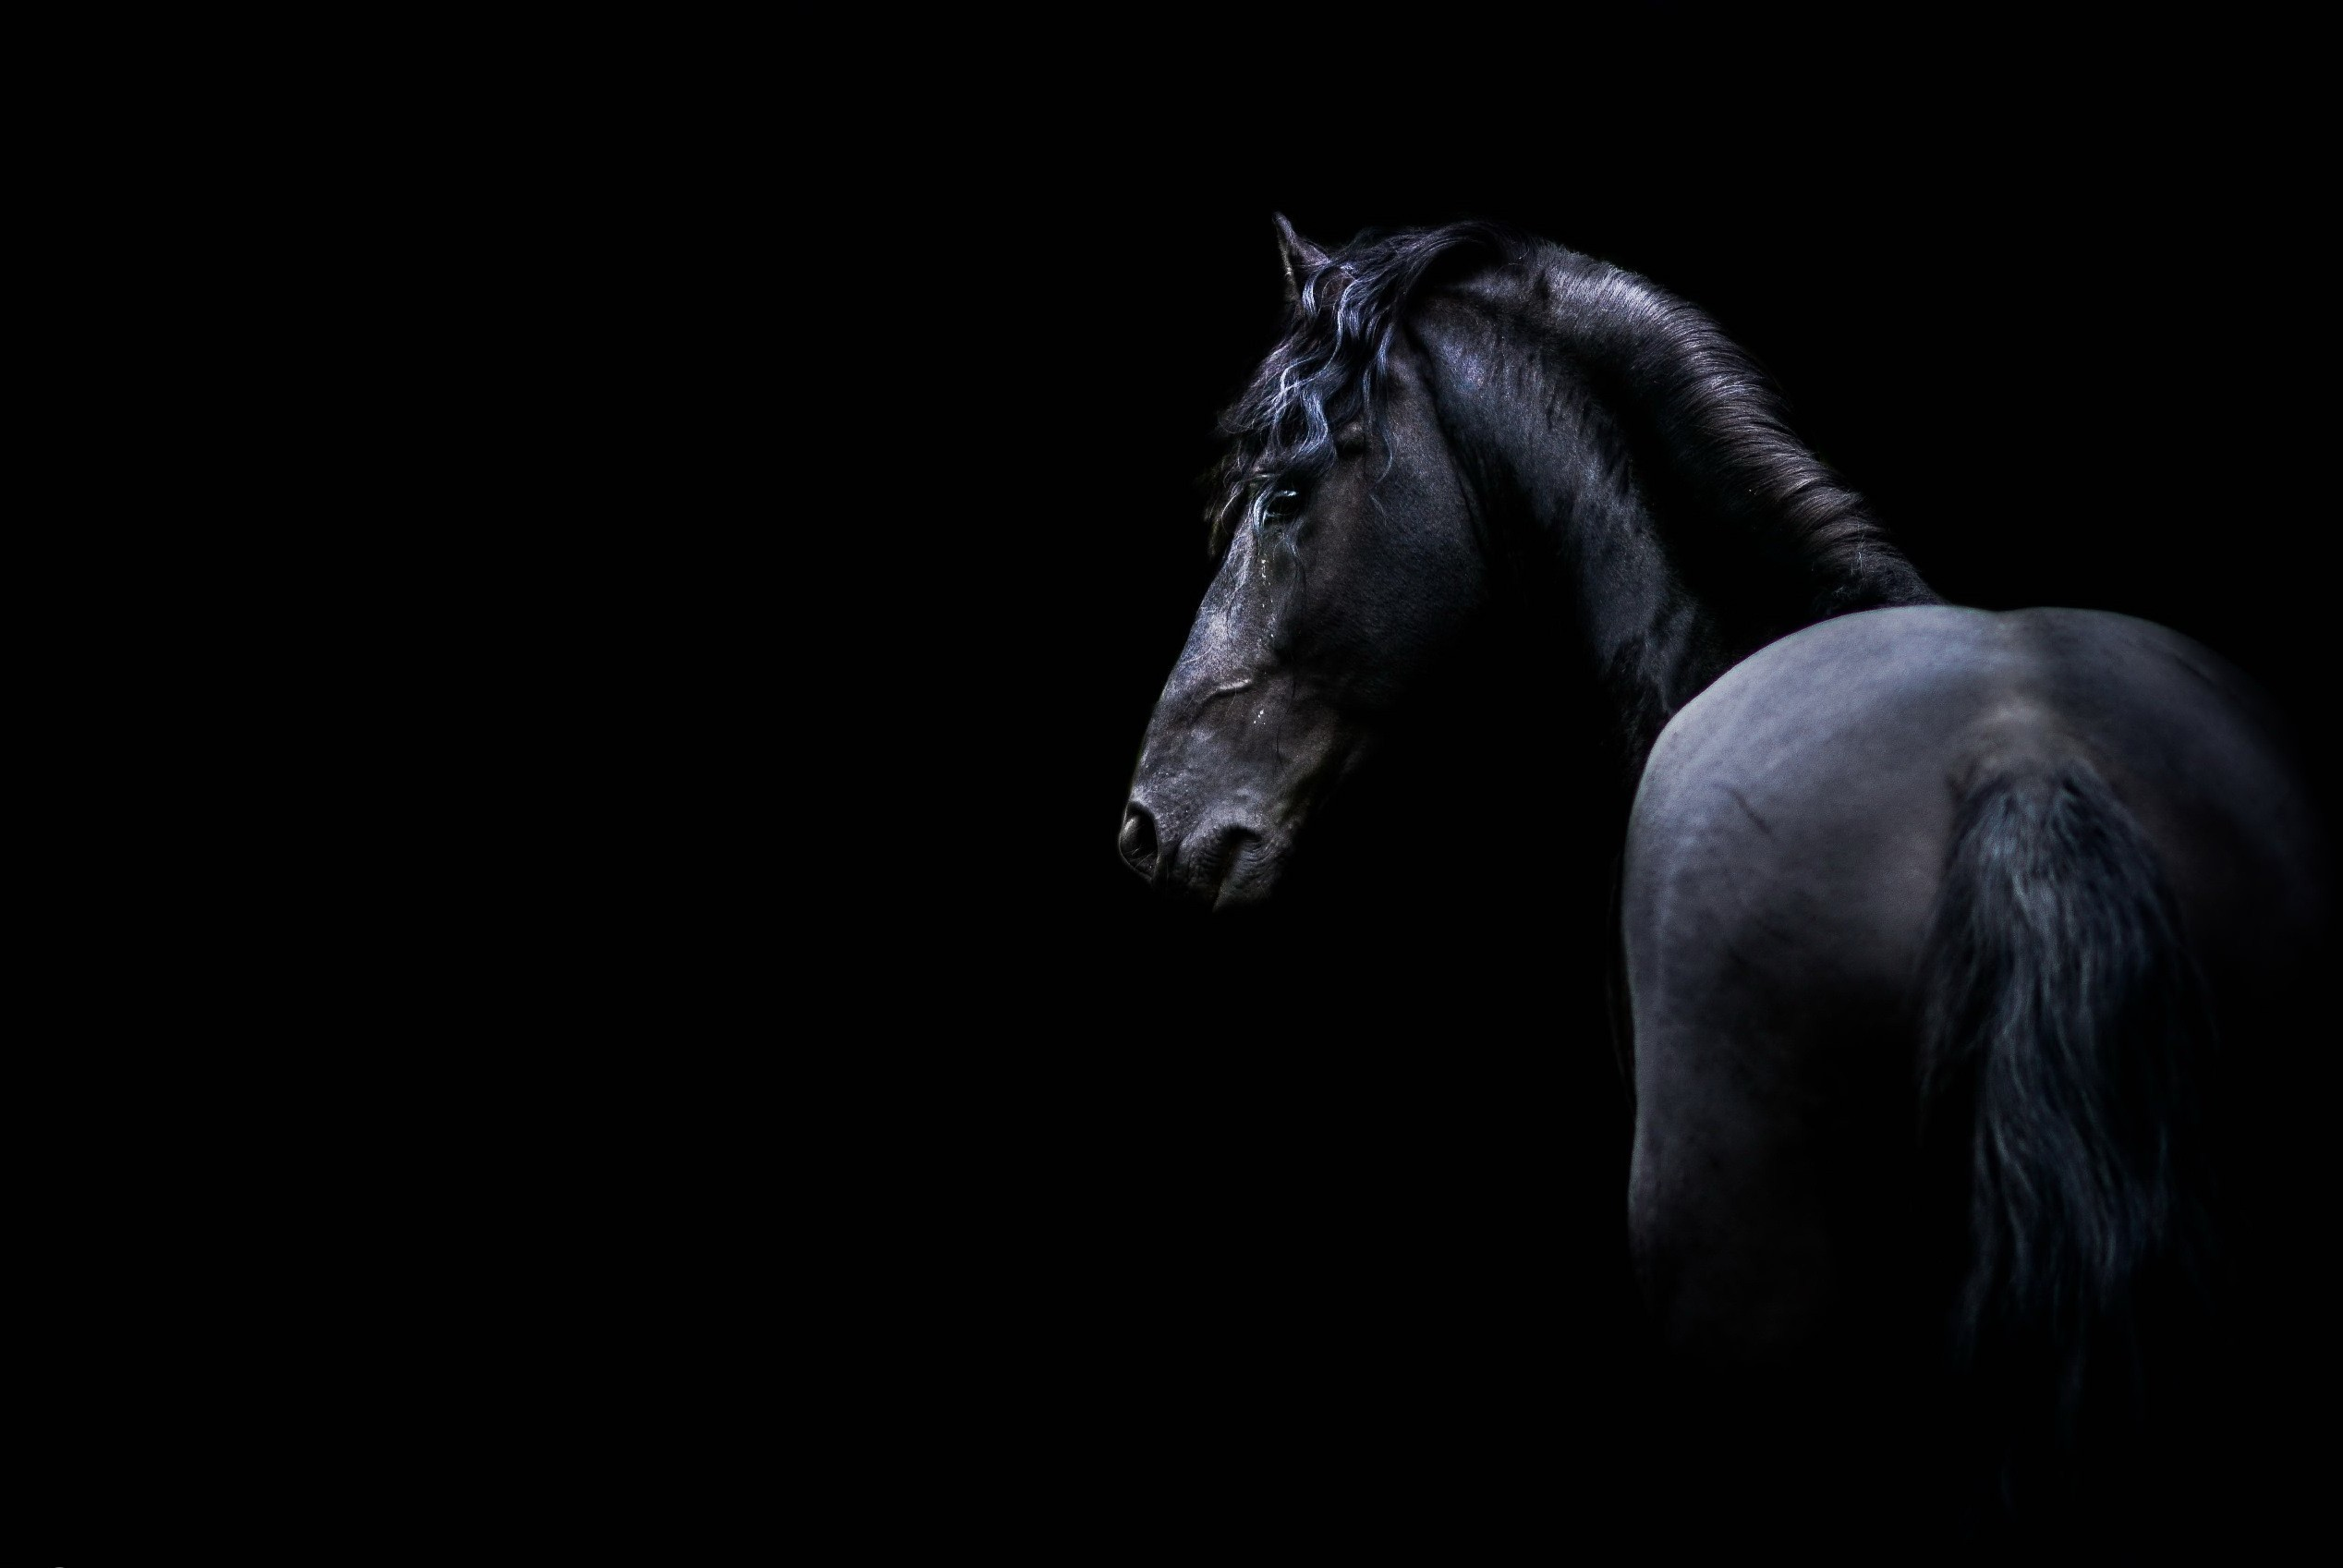 Free Download 60 Dark Horse Wallpapers On Wallpaperplay 2536x1697 For Your Desktop Mobile Tablet Explore 37 Blackhorse Wallpaper Blackhorse Wallpaper